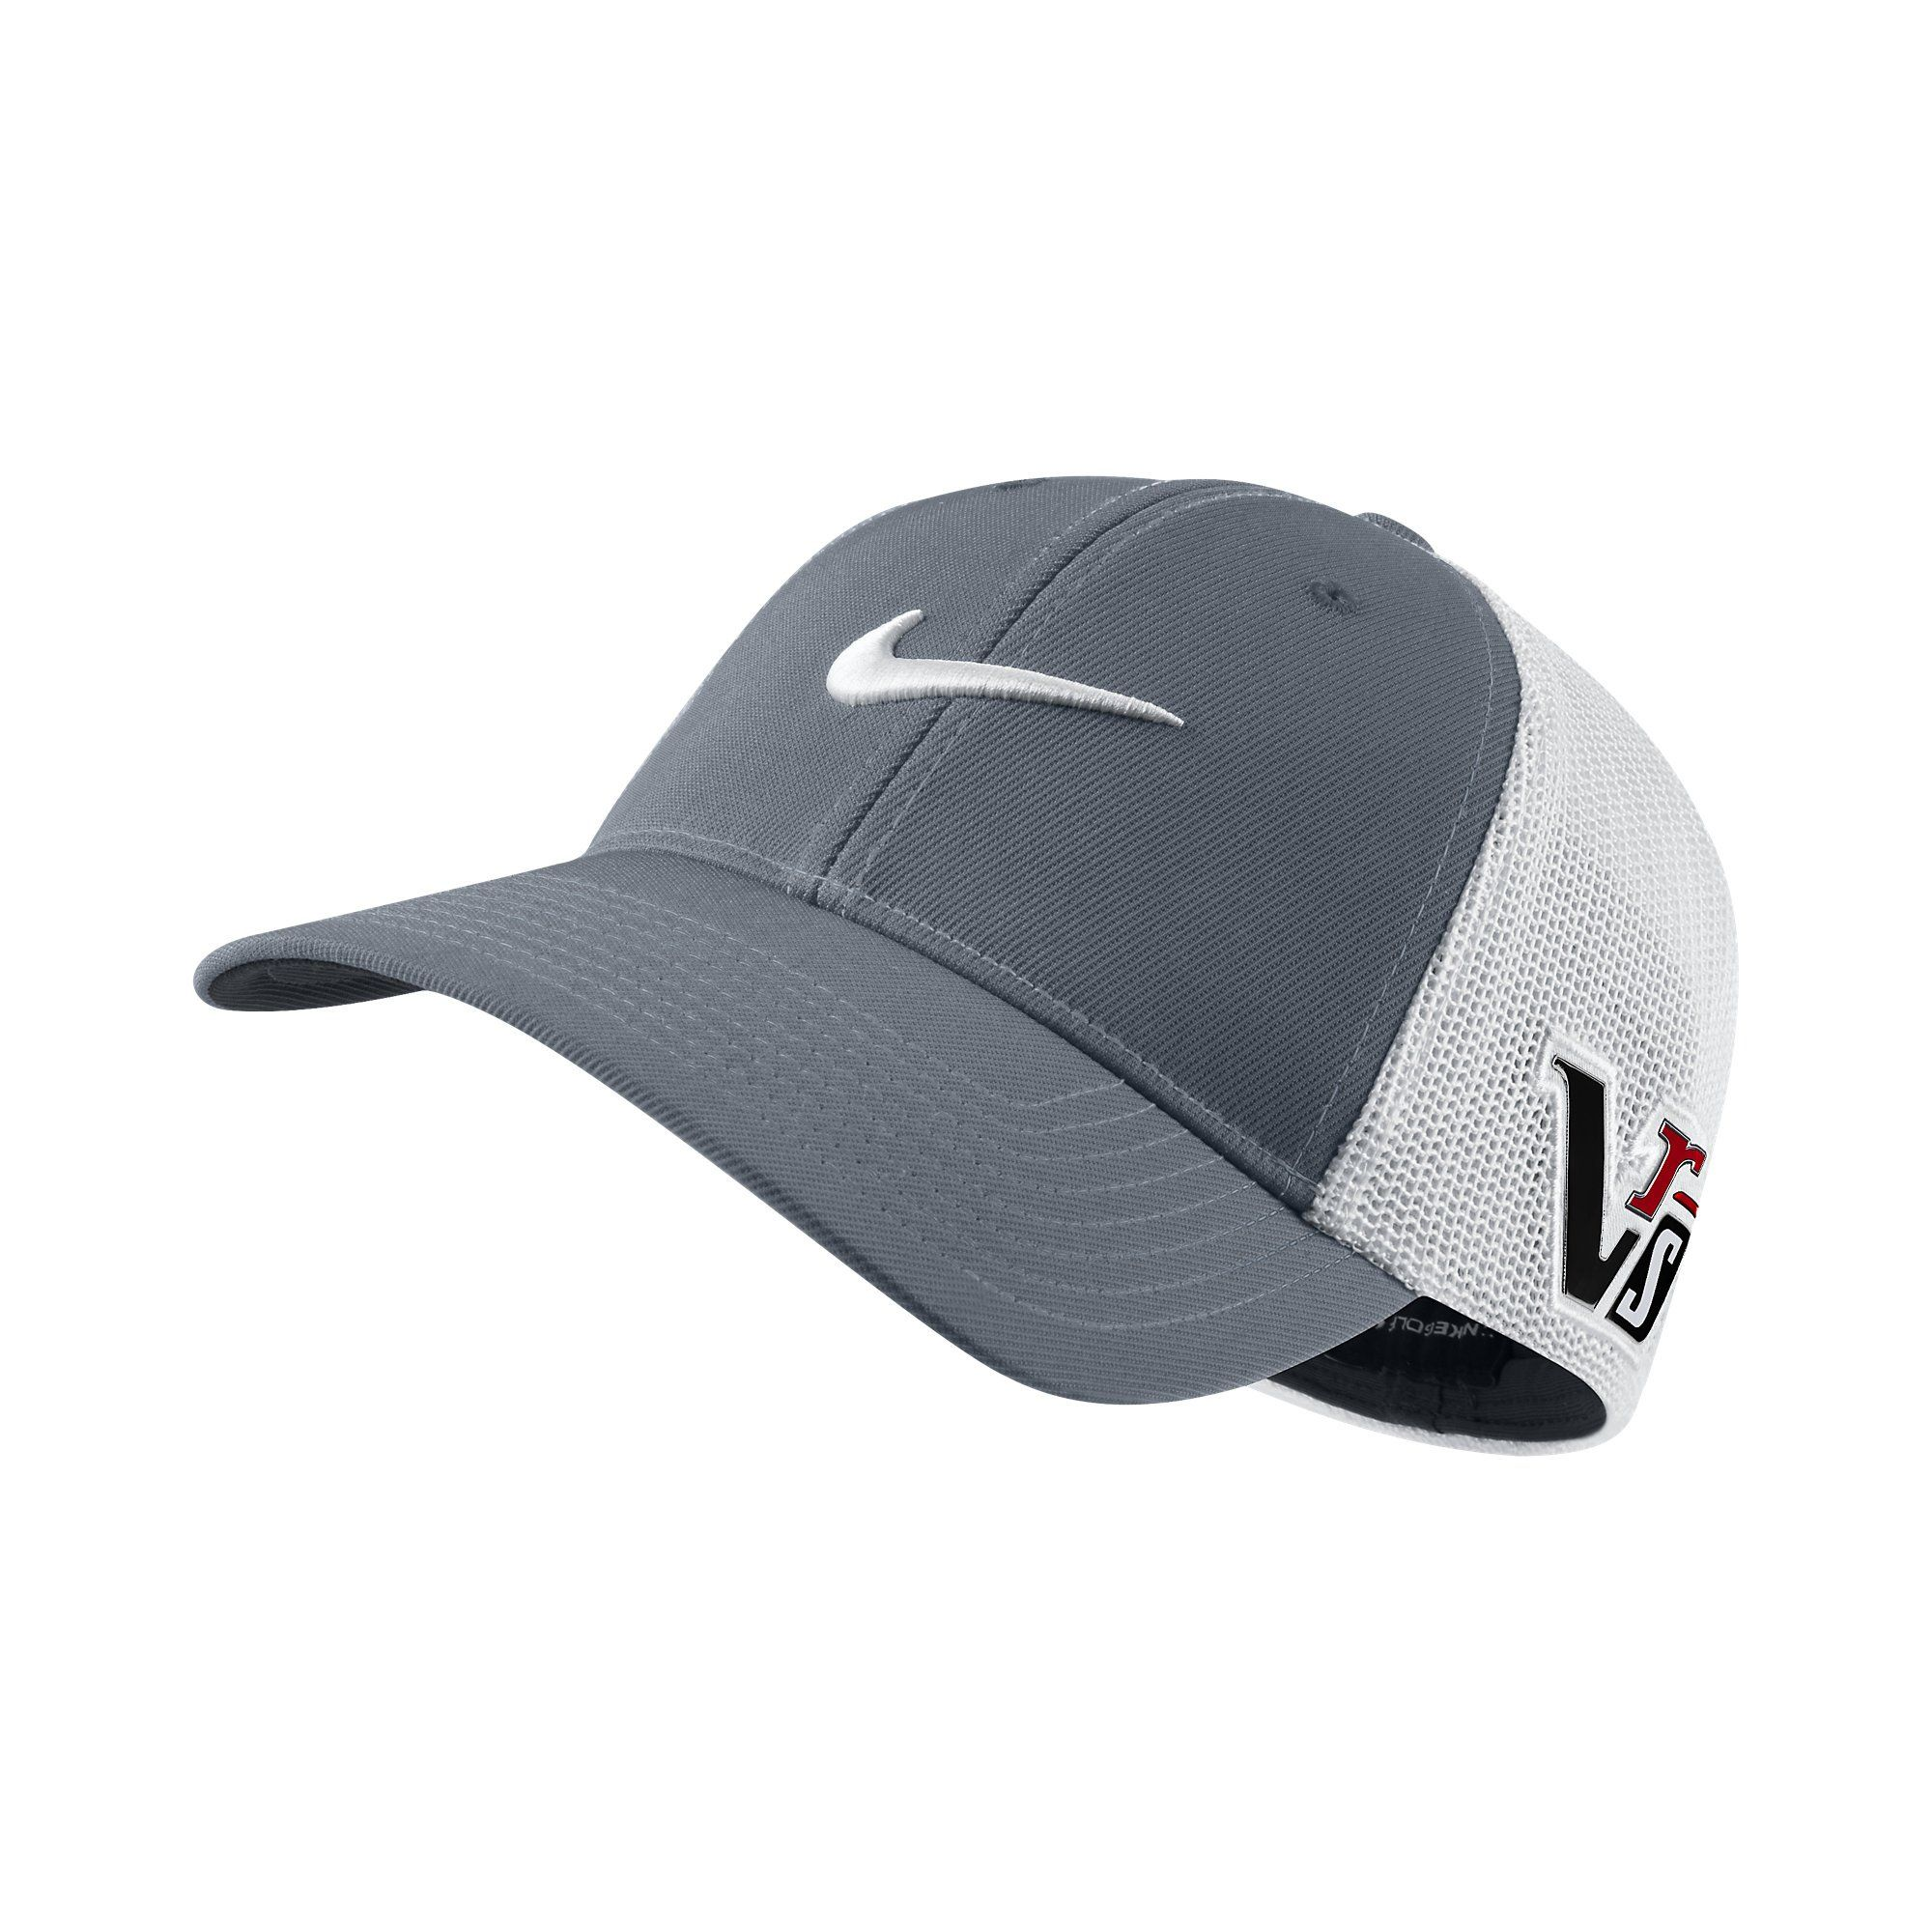 8f0ac8167c6 Amazon.com  Nike Men s Tour Flex Fit Golf Cap Hat